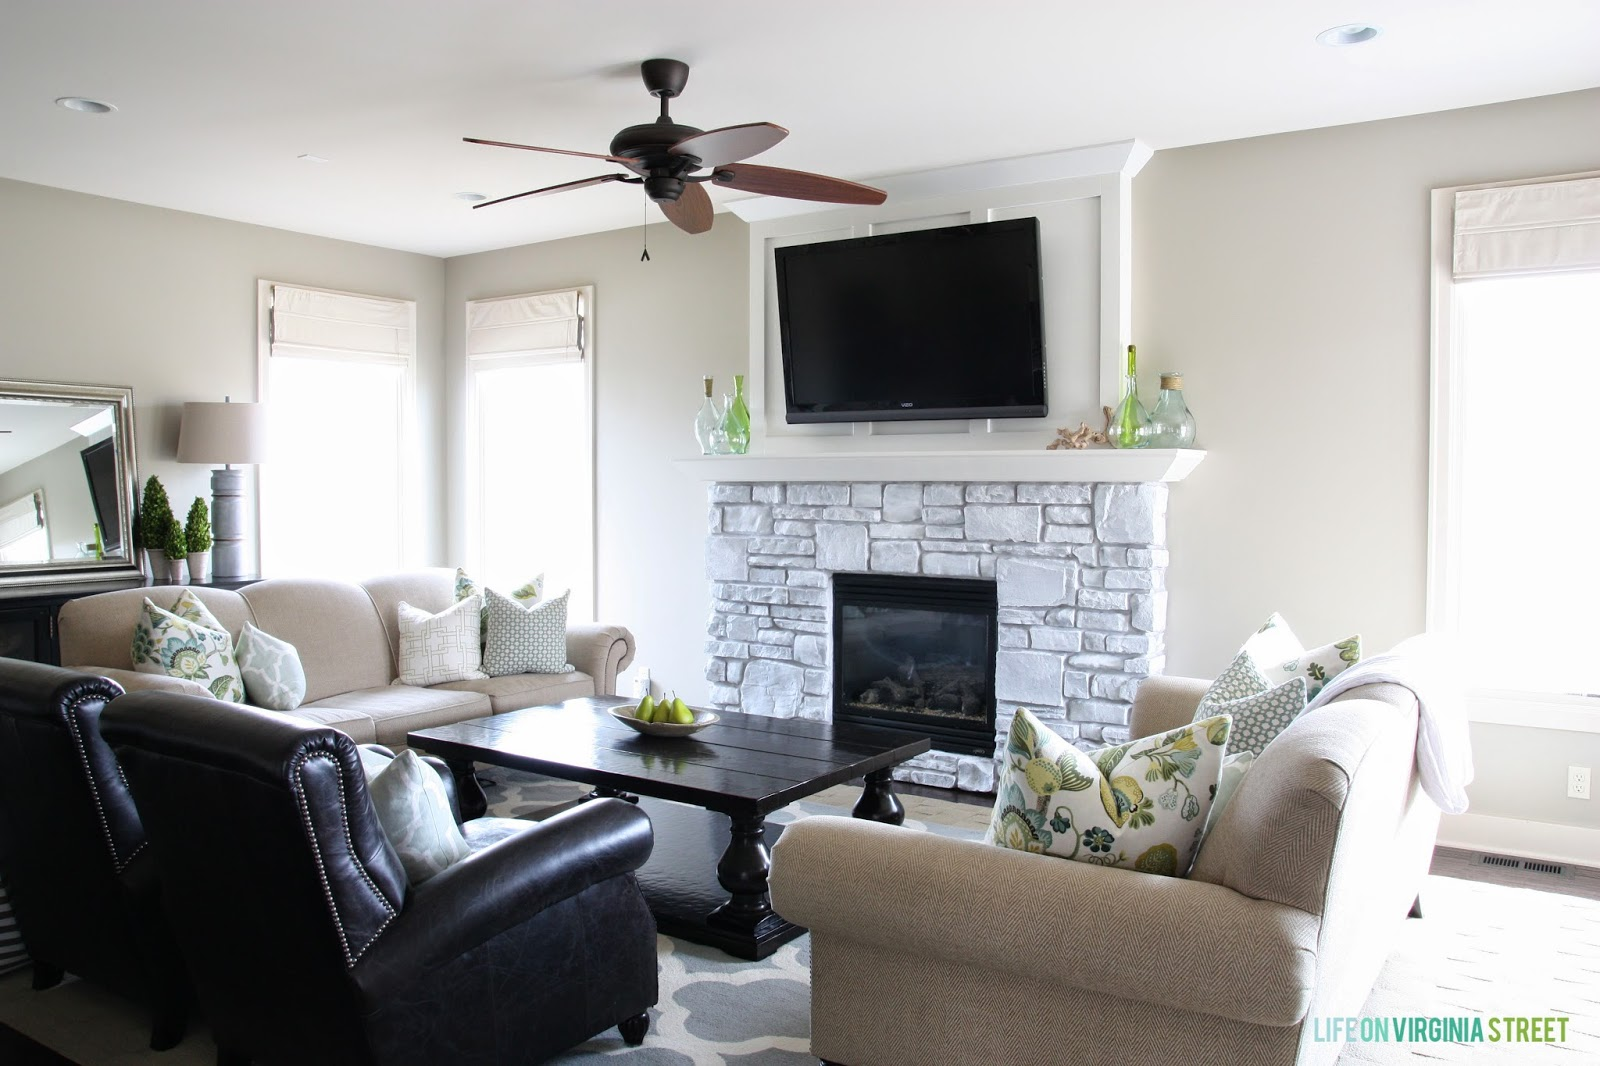 incredible behr paint living room | Paint Colors - Life On Virginia Street